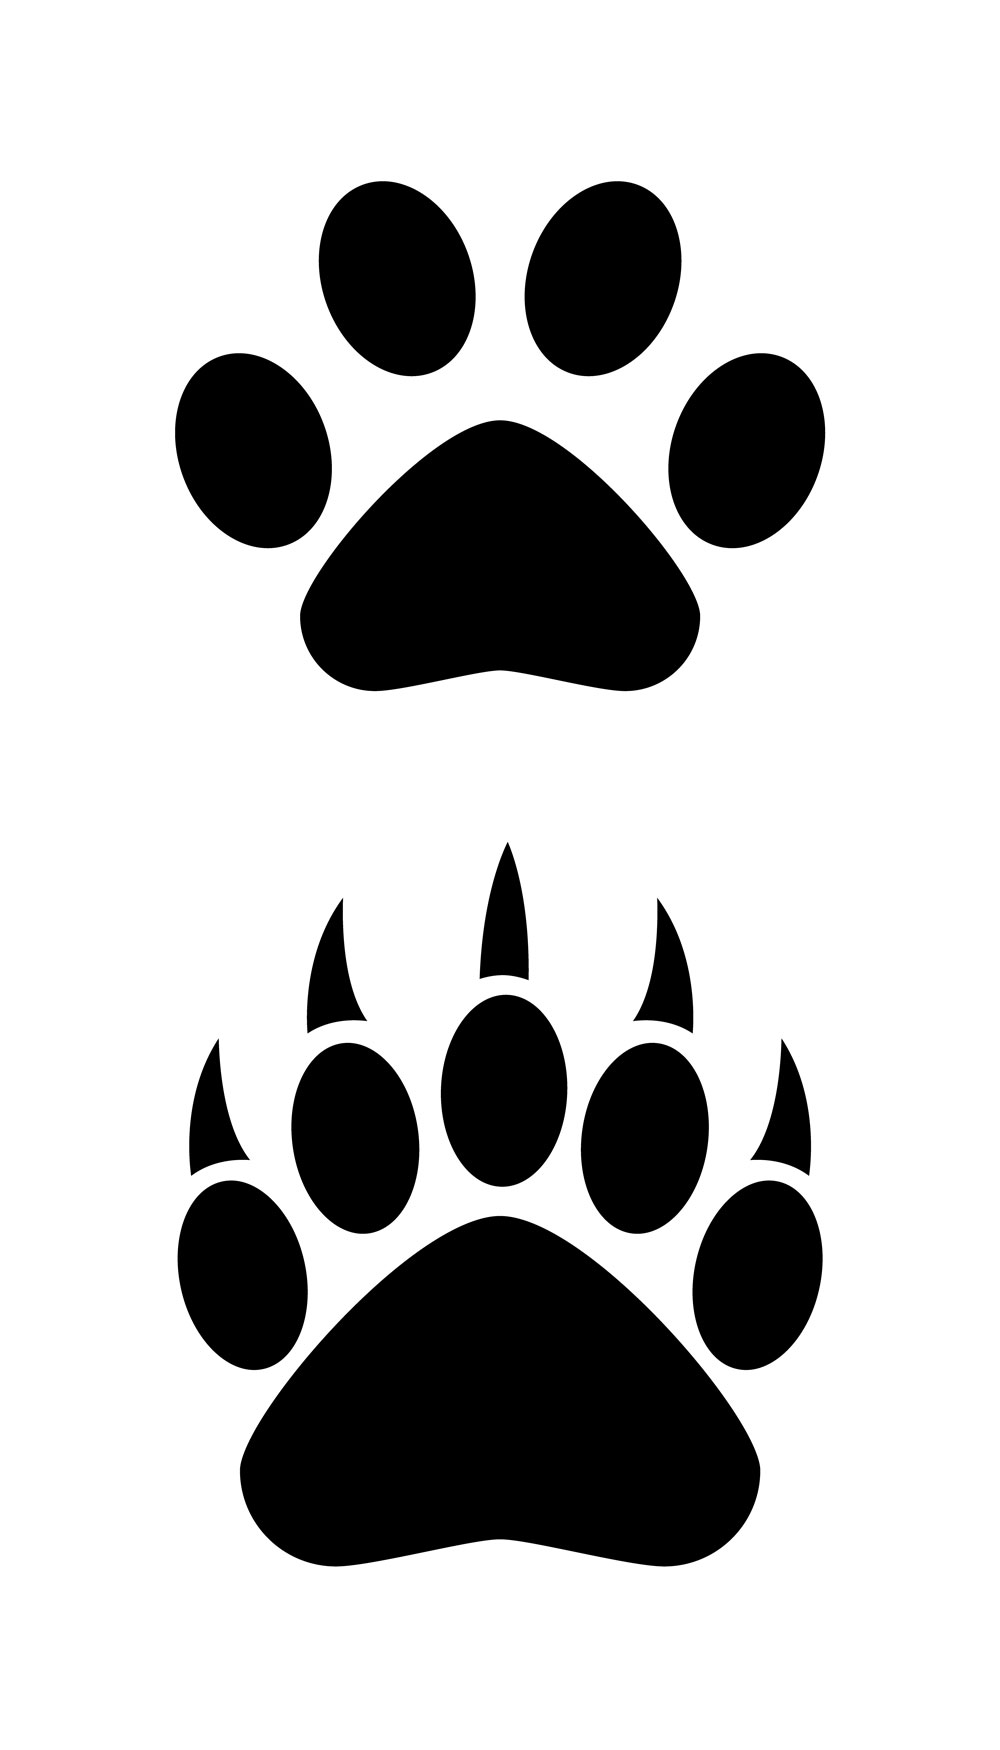 Bear black and white clipart bear paw png free stock Bear paw logo clipart - WikiClipArt png free stock